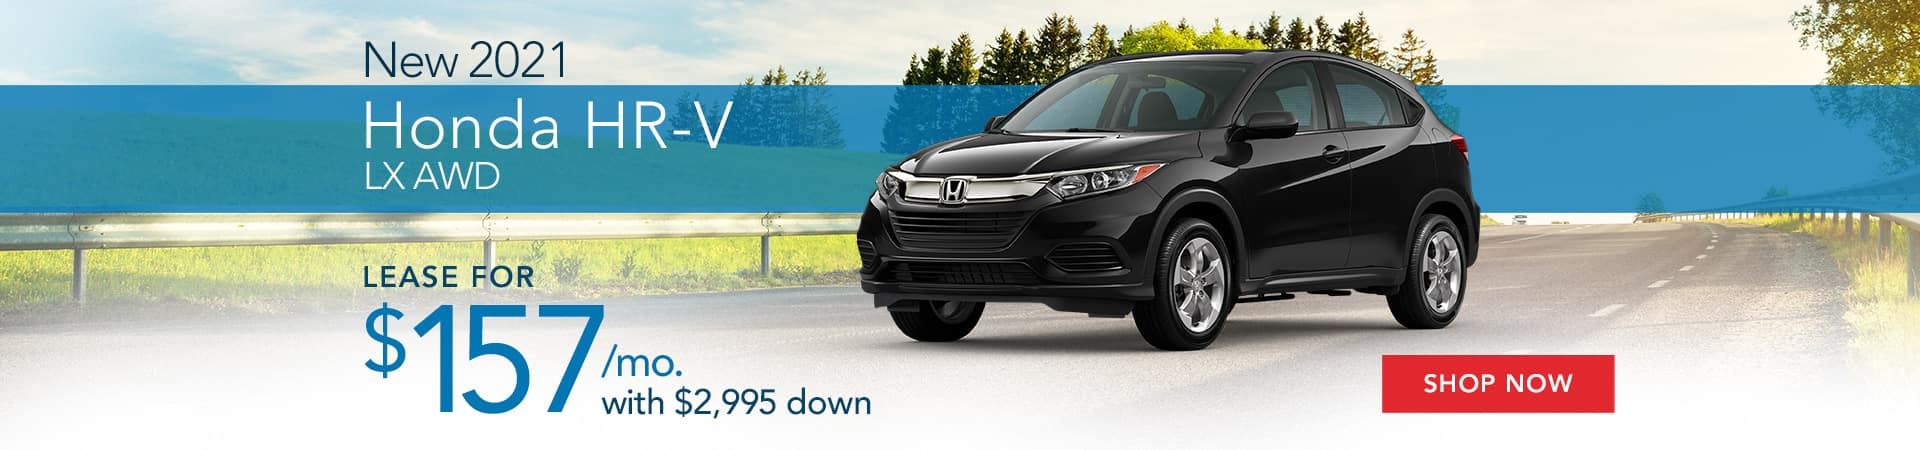 BHO_1920x450_New 2021 Honda HR-V LX AWD __04'21